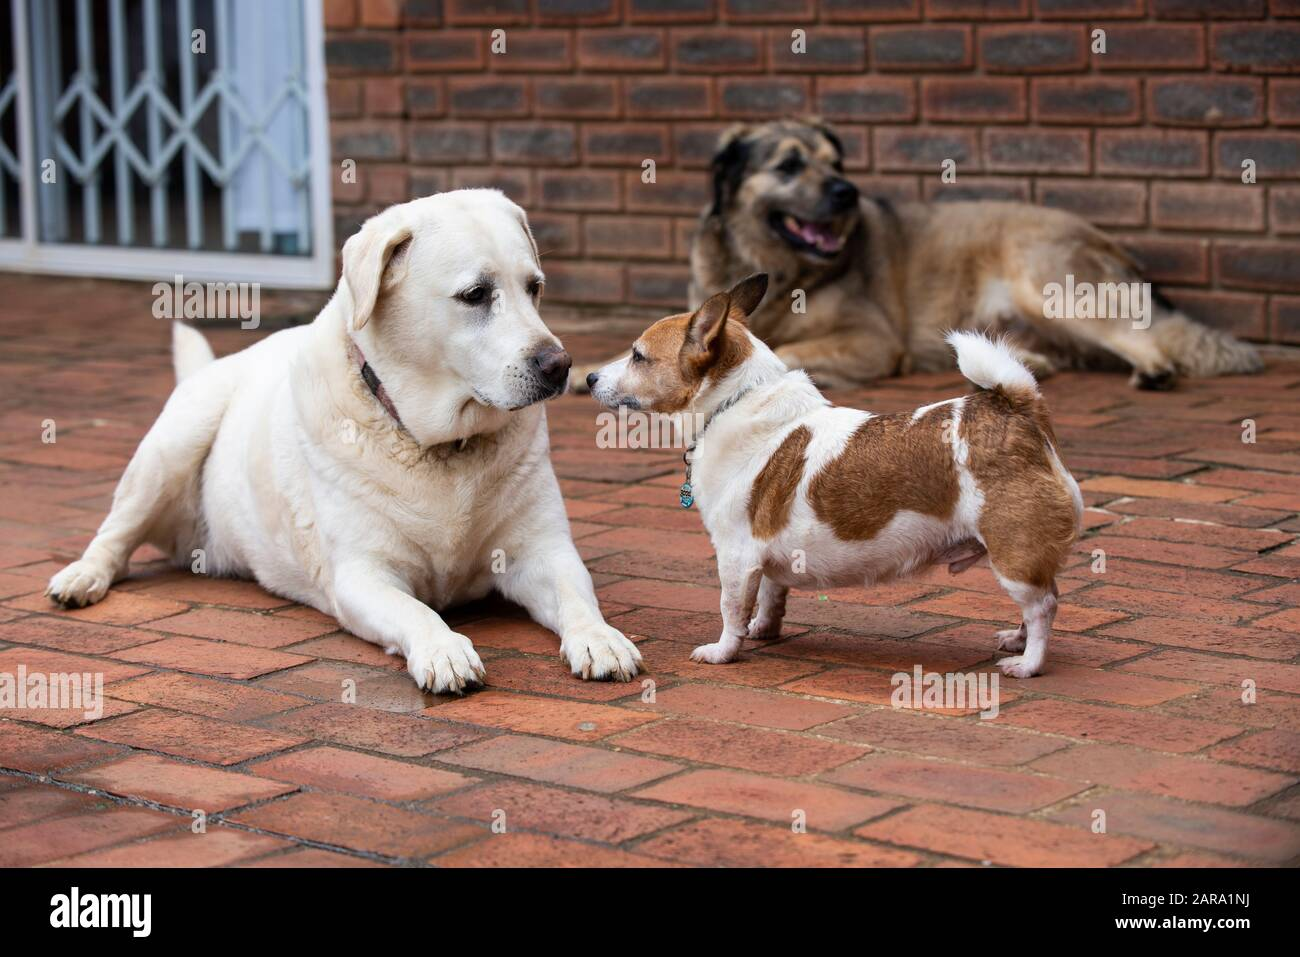 Variety of dogs in one shot, Westville, South Africa Stock Photo